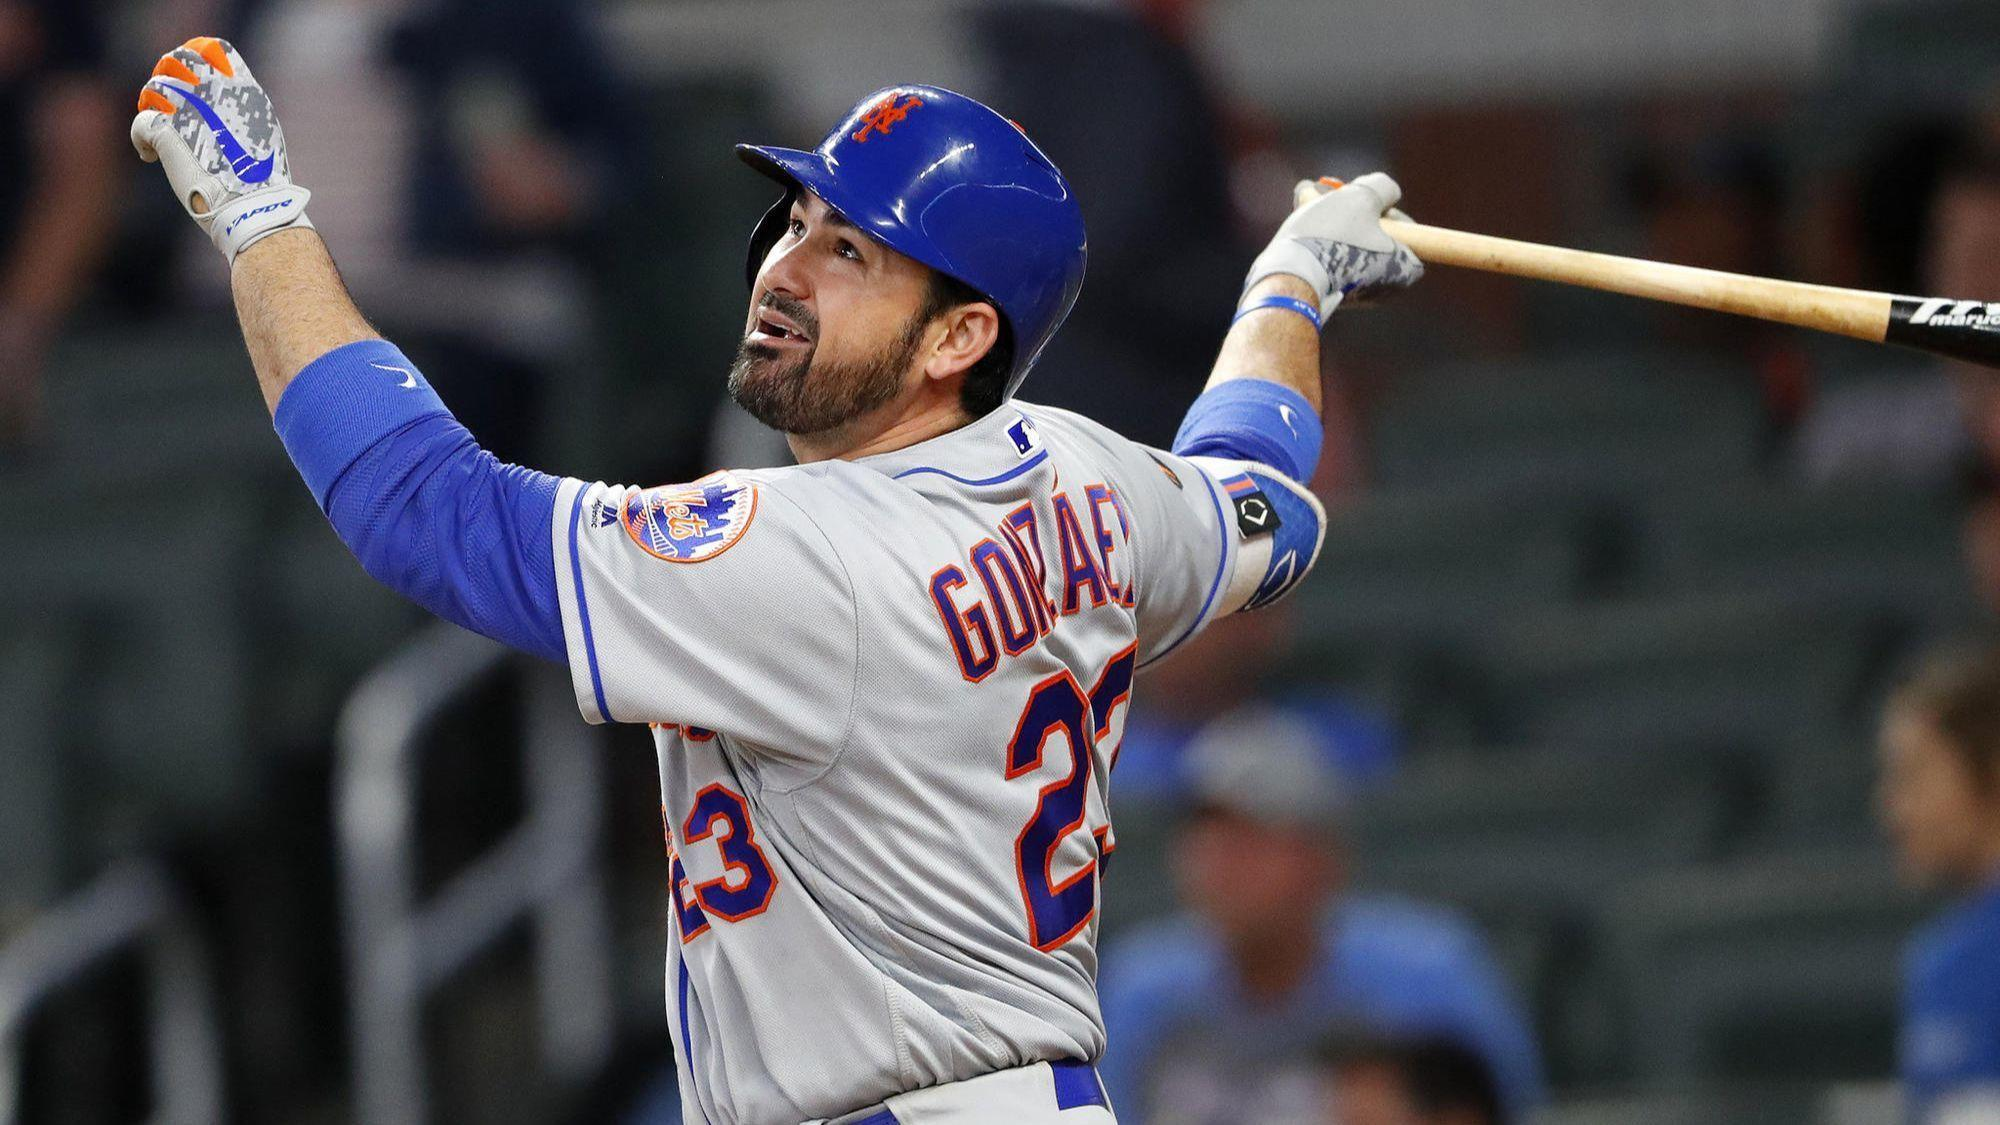 Former Dodgers first baseman Adrian Gonzalez is released by the New York Mets